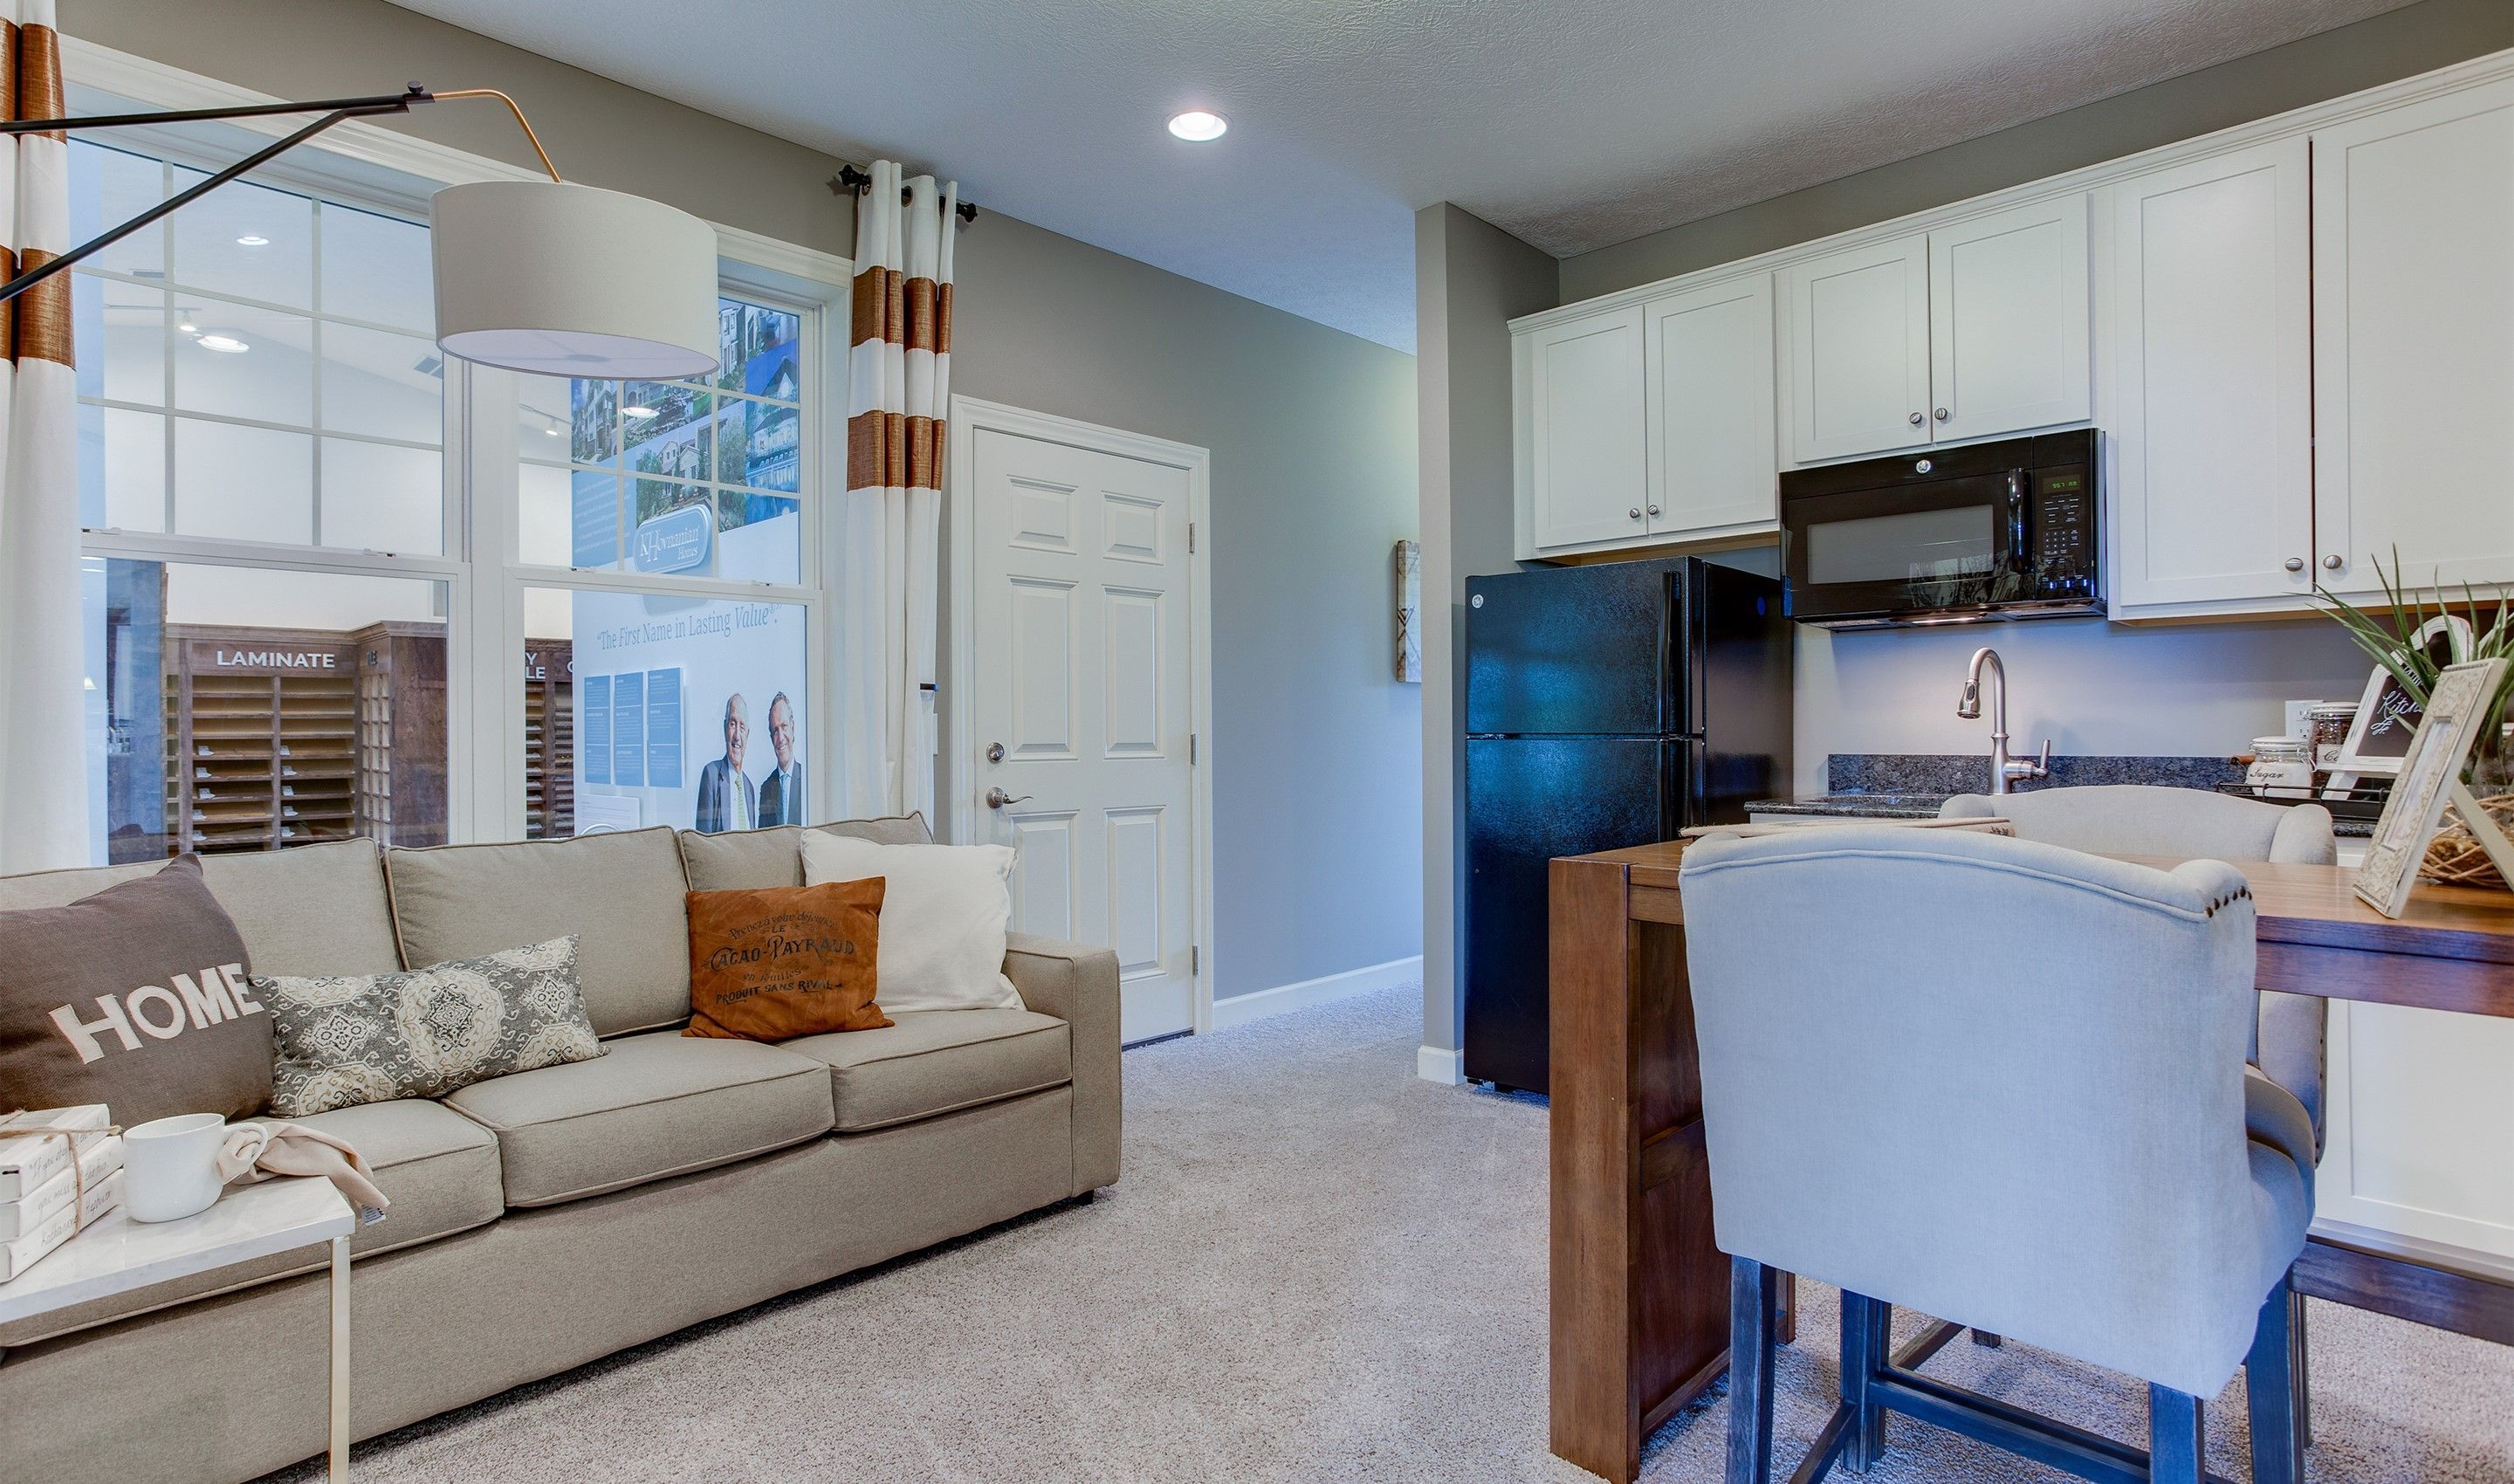 Kitchen featured in the Dover By K. Hovnanian® Homes - Build on Your Lot in Toledo, OH